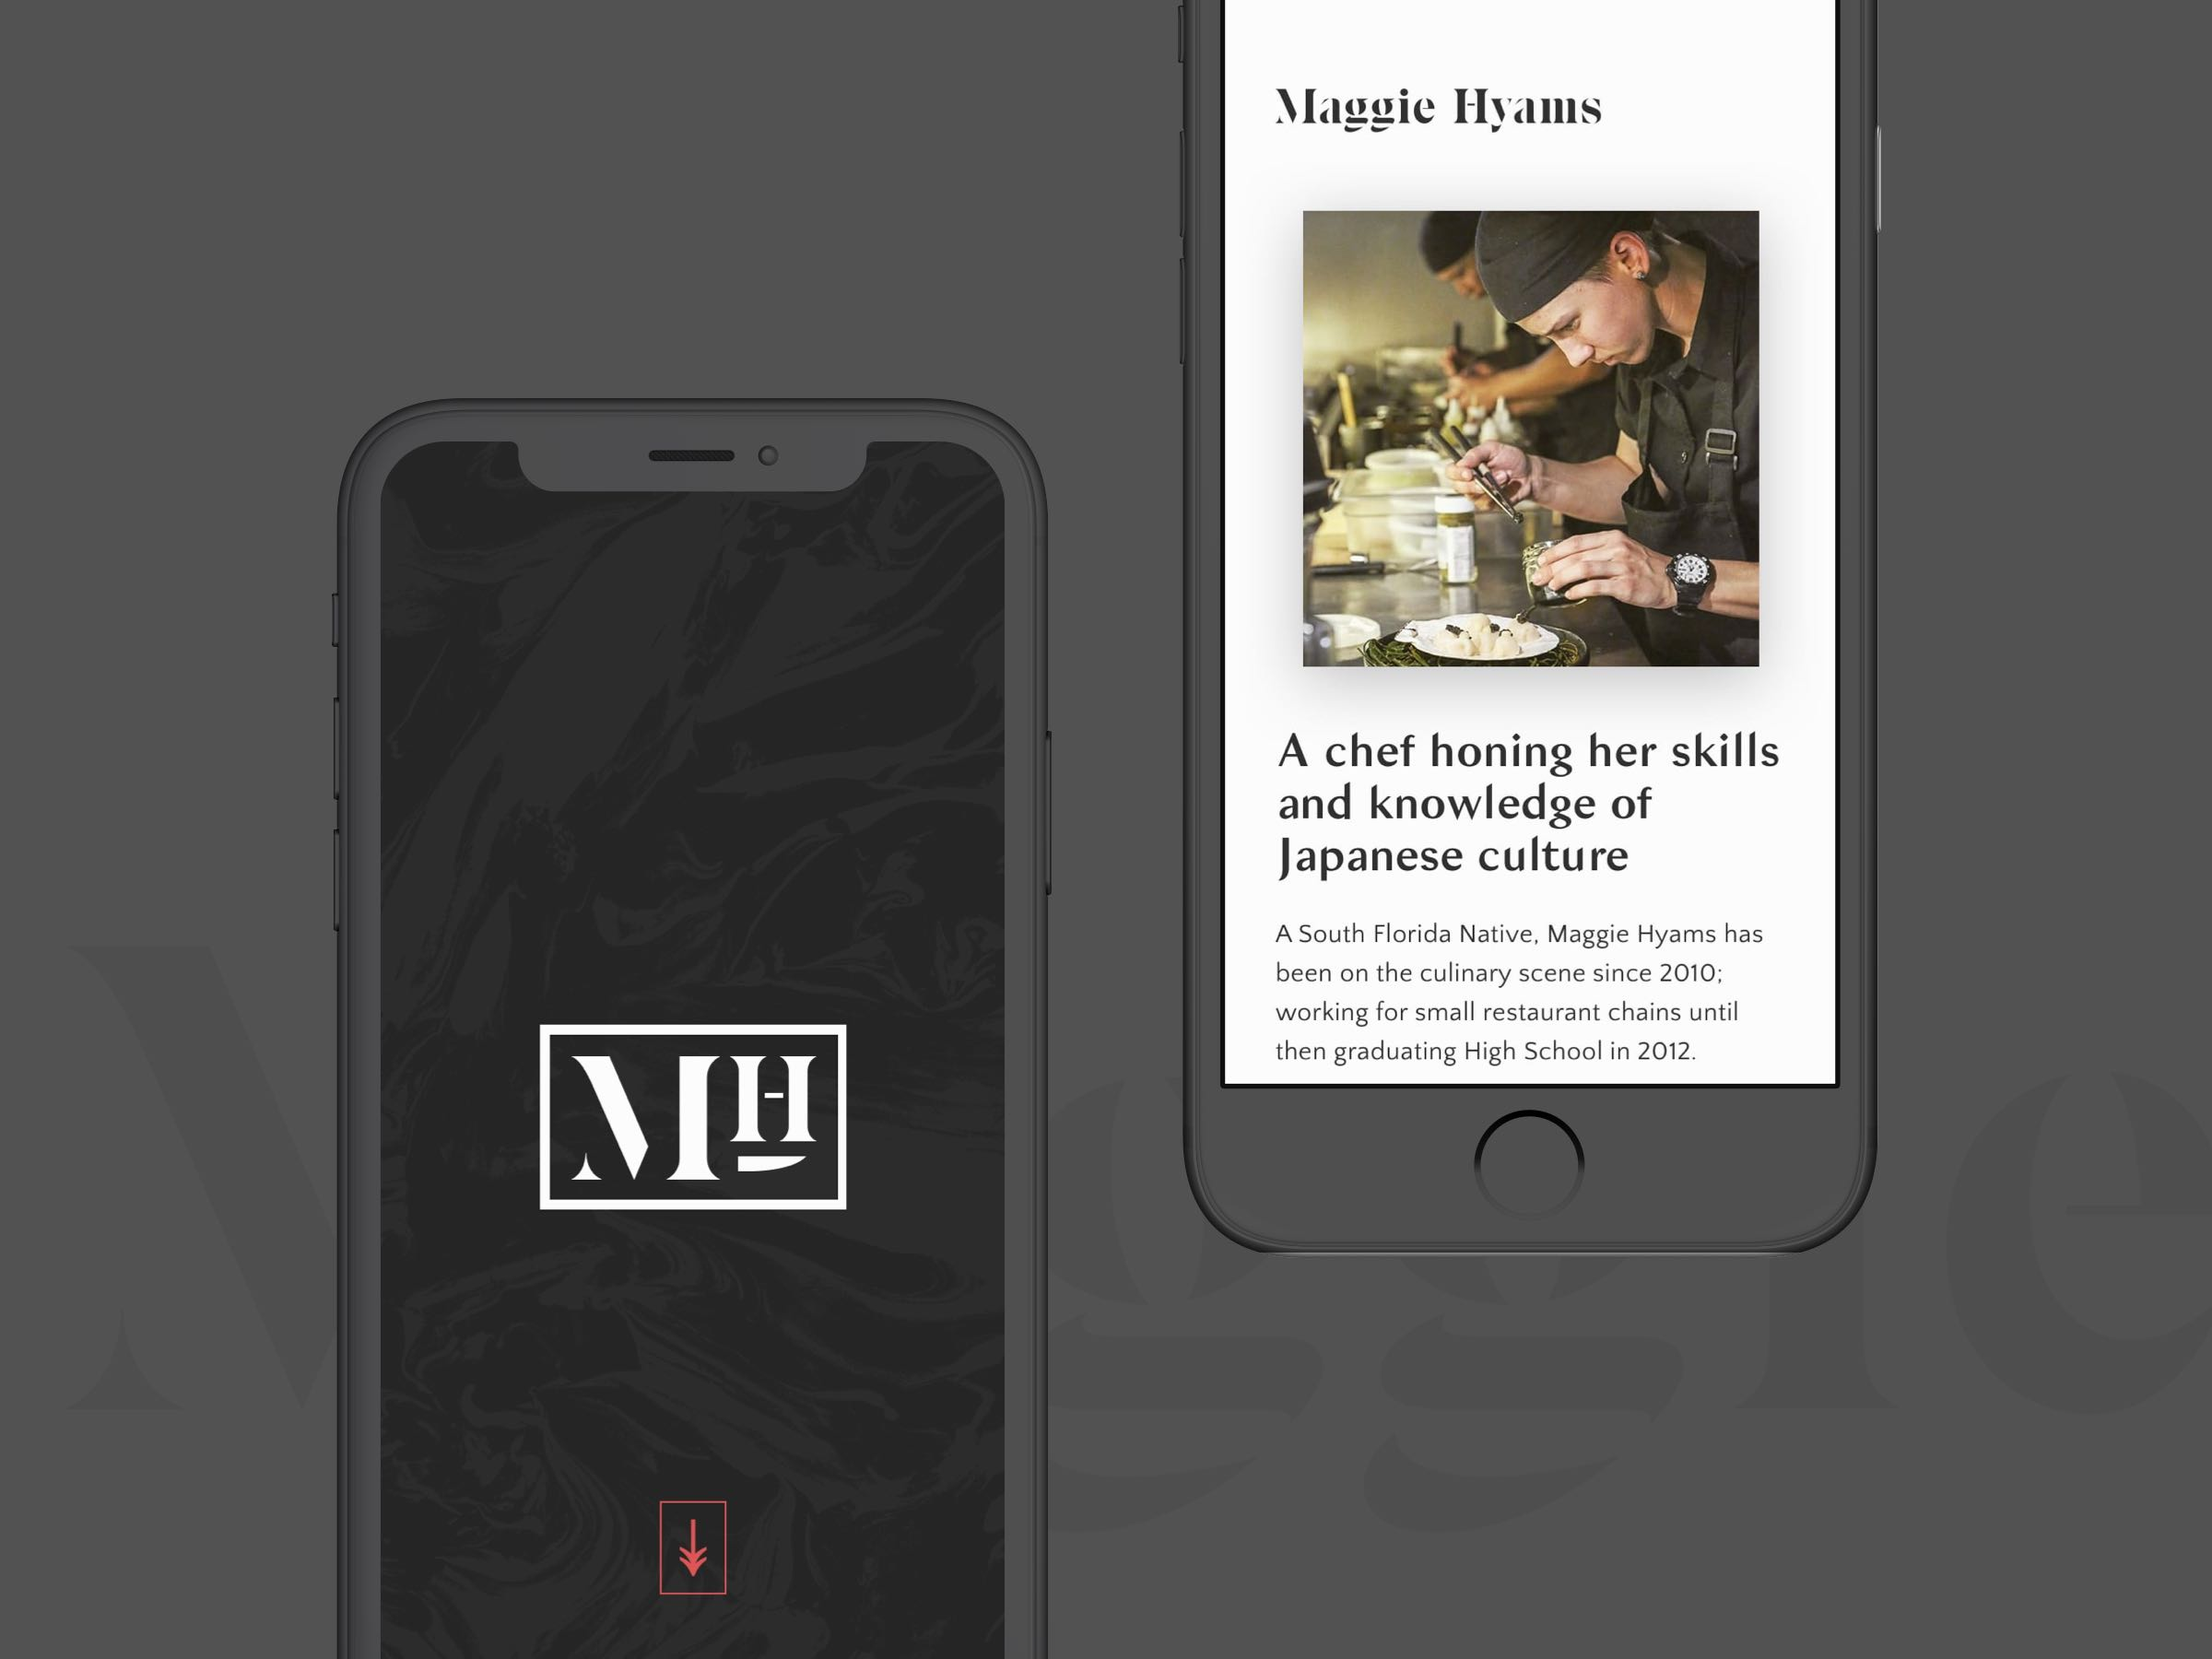 Maggie Hyams website mobile view